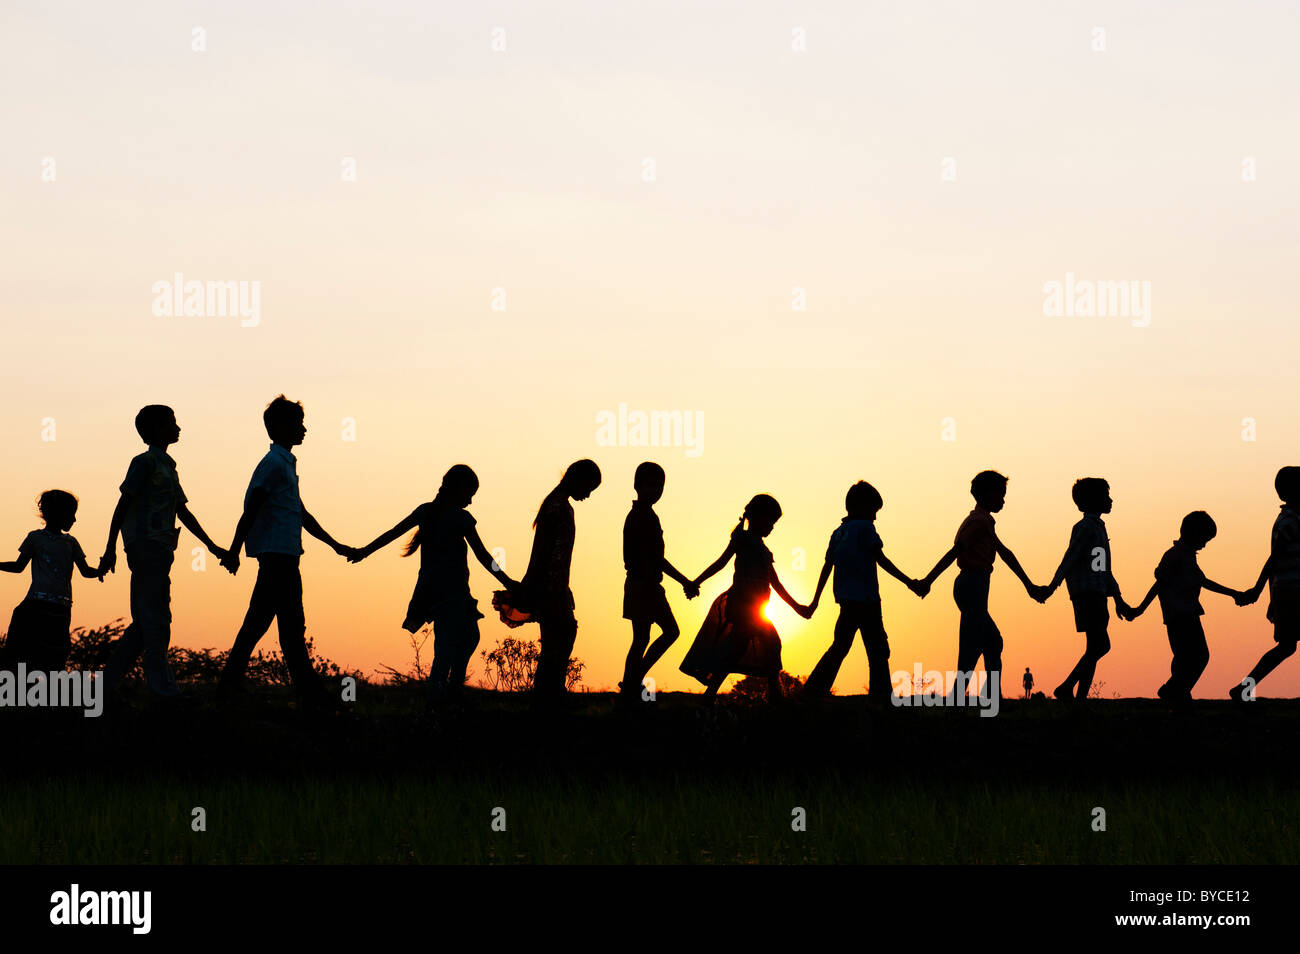 boy and girl holding hands silhouette stock photos boy and girl